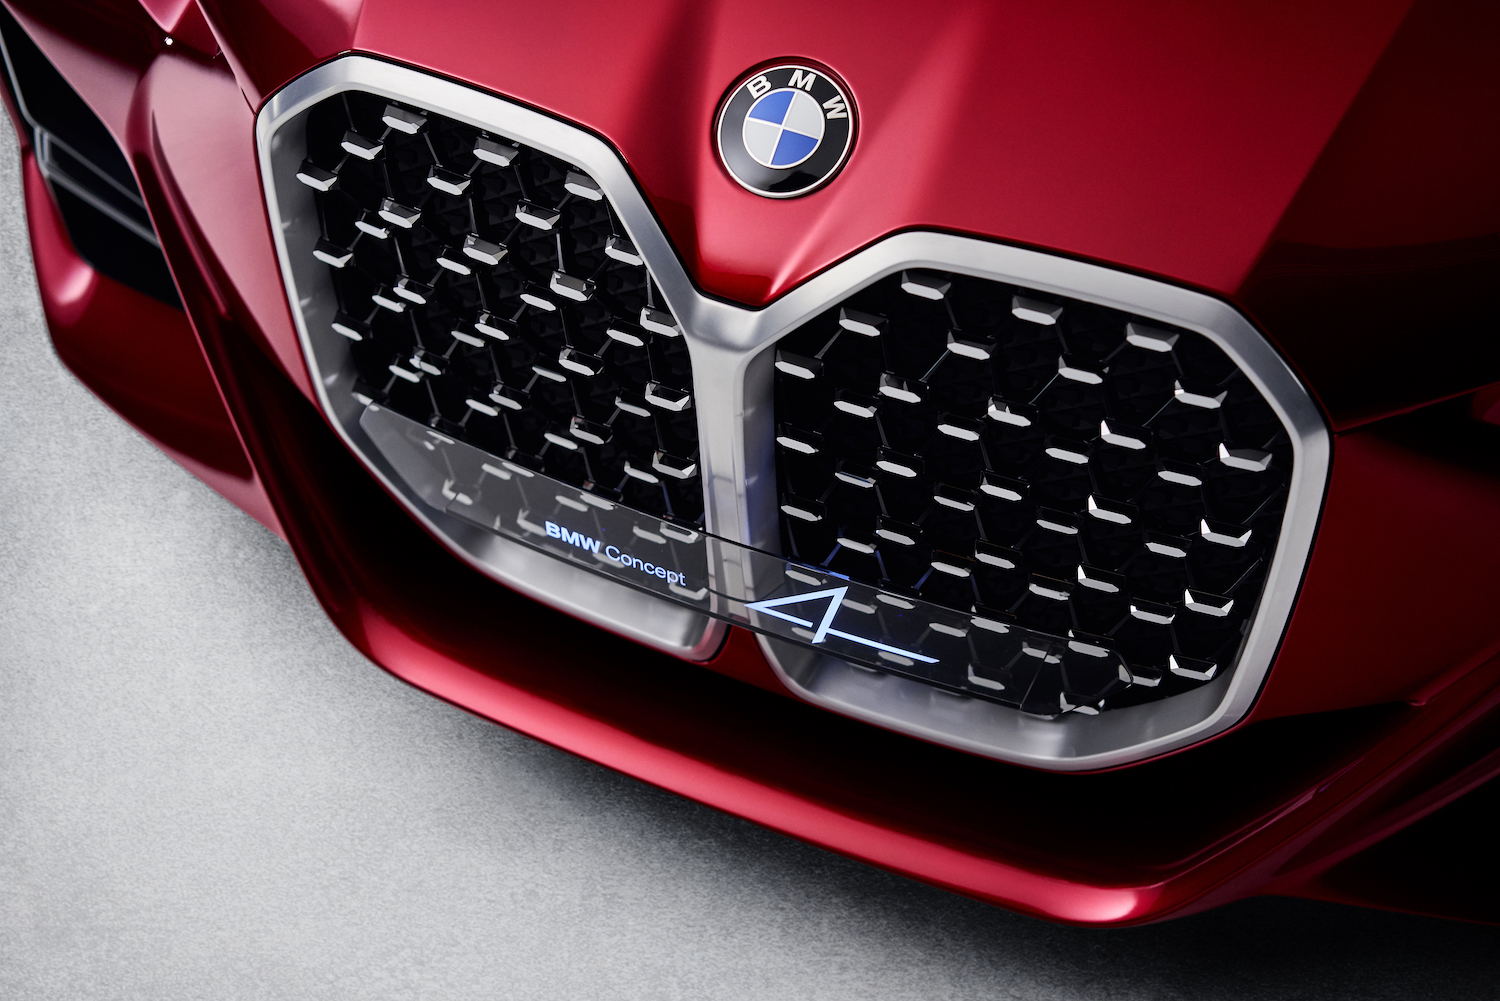 2021 BMW M4 Concept 4 front grille kidneys